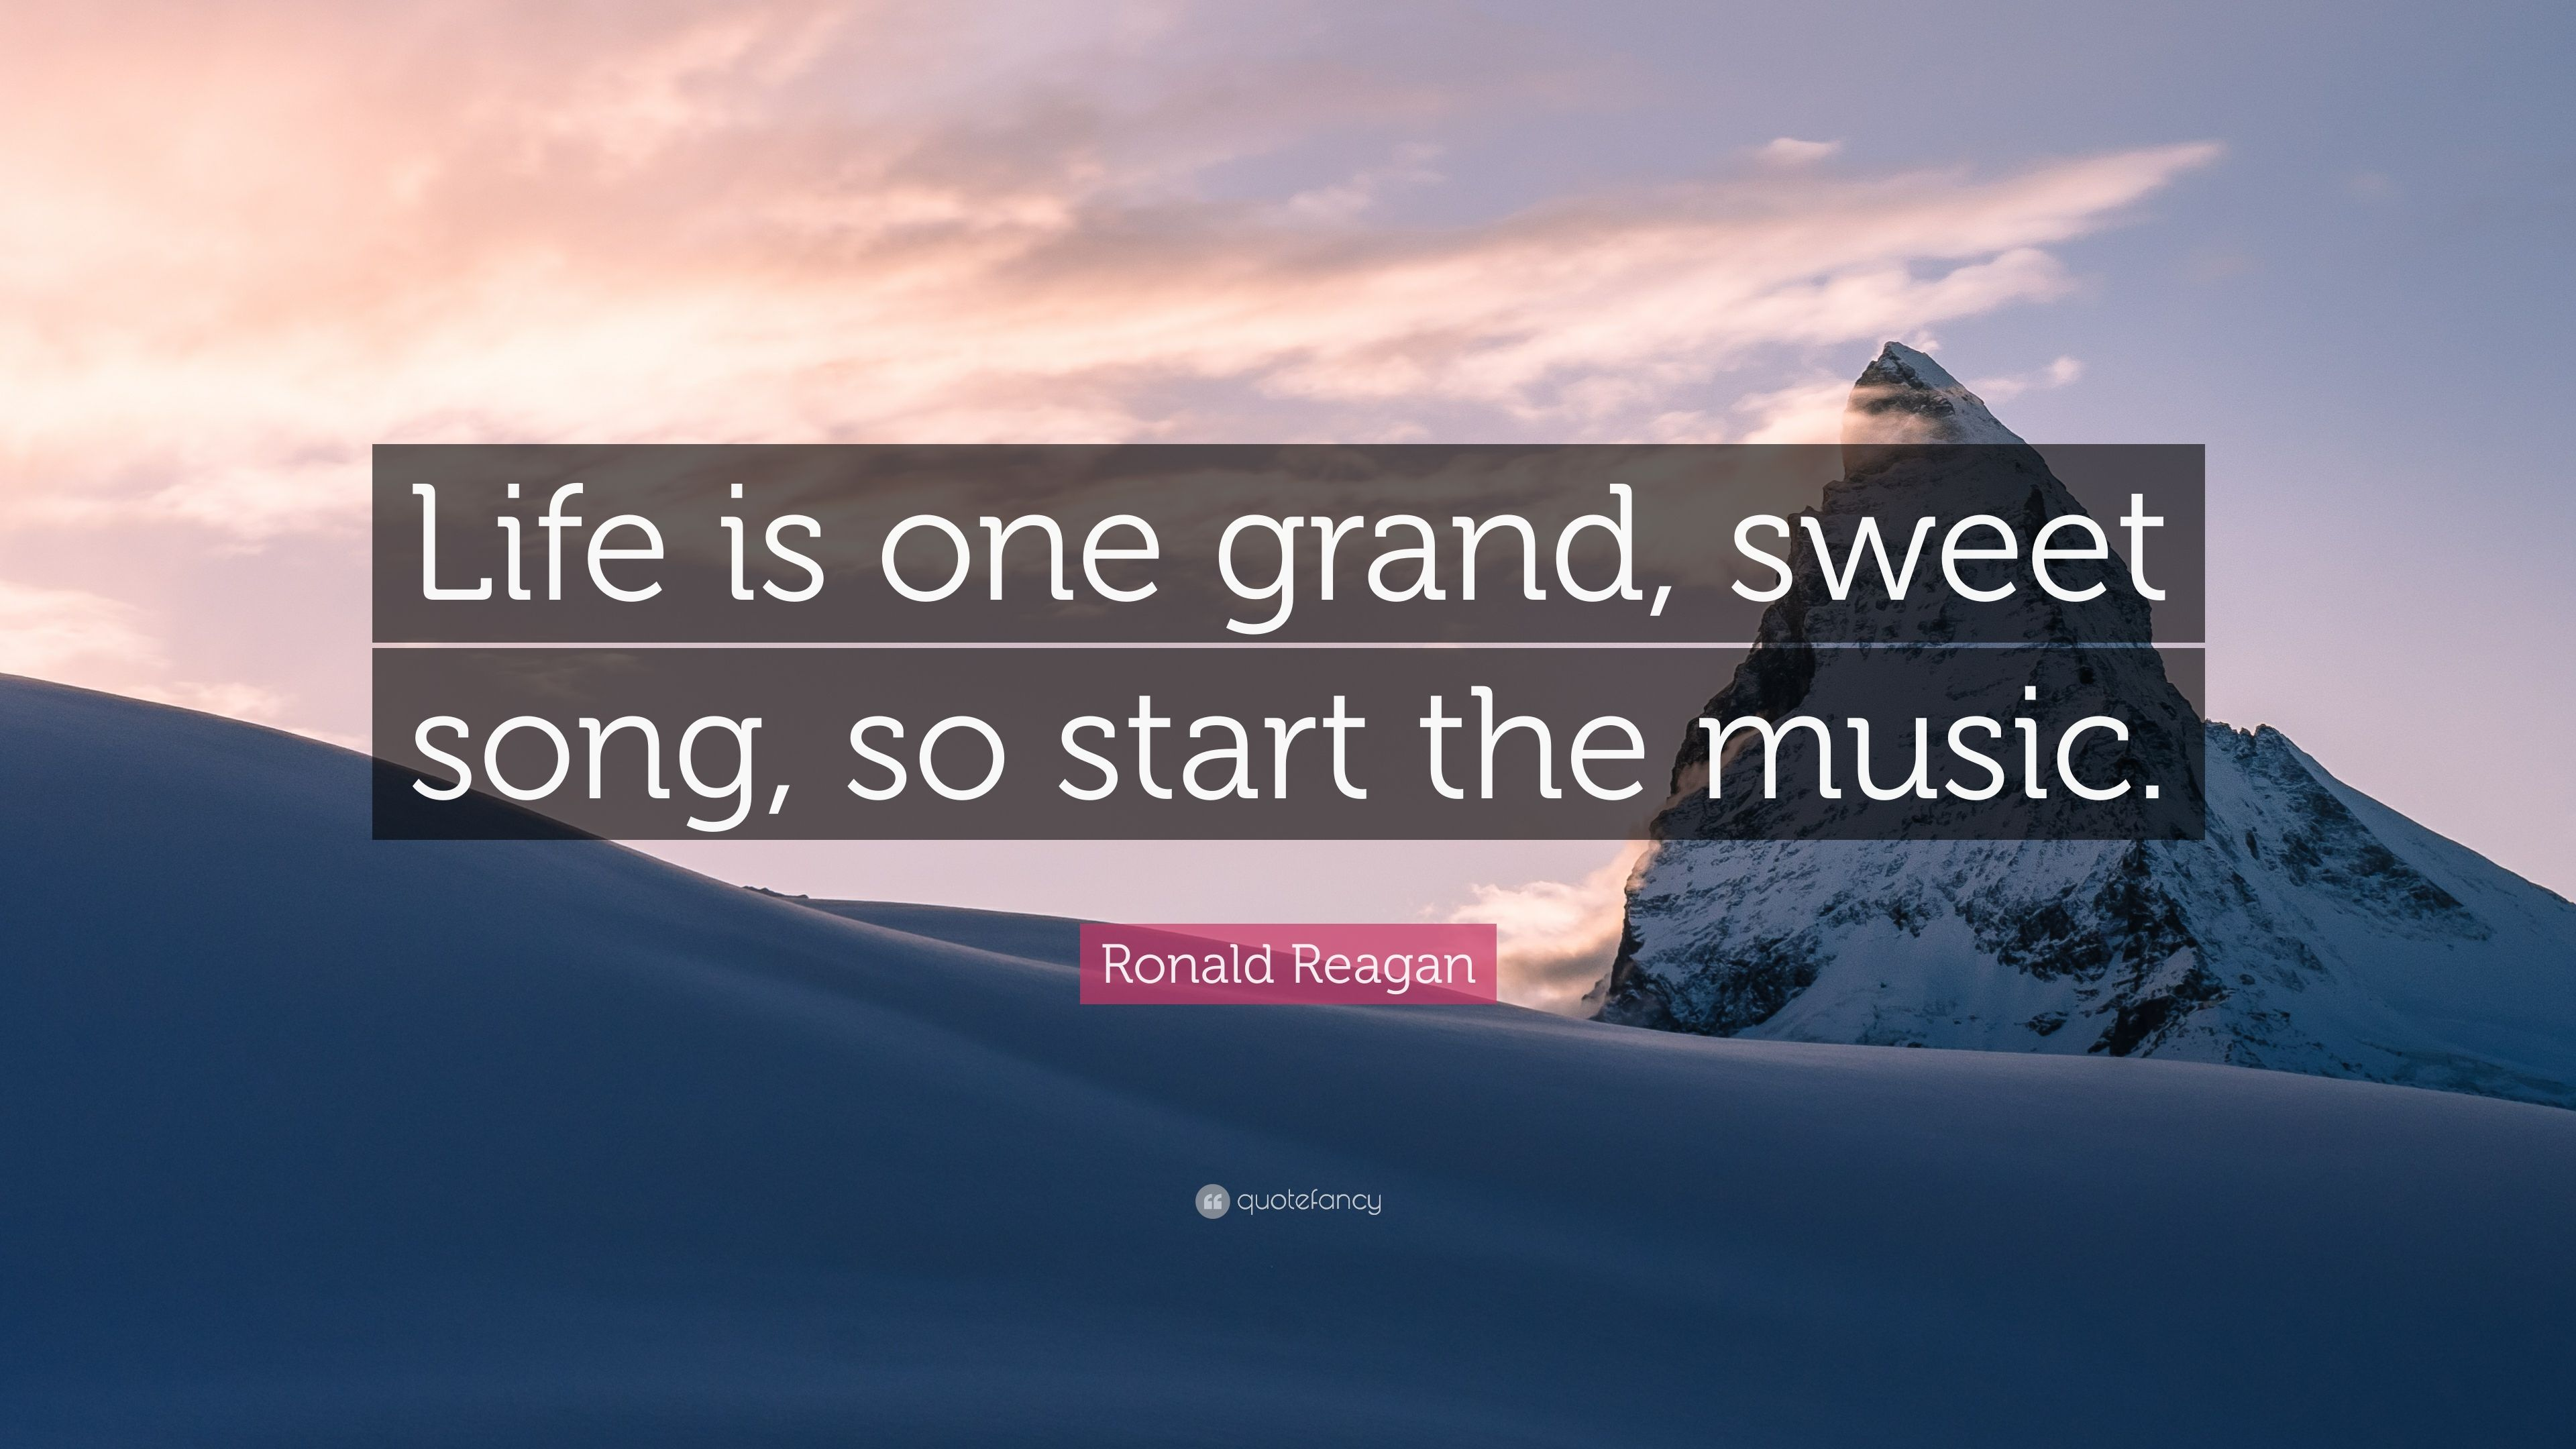 Marvelous Ronald Reagan Quote: U201cLife Is One Grand, Sweet Song, So Start The